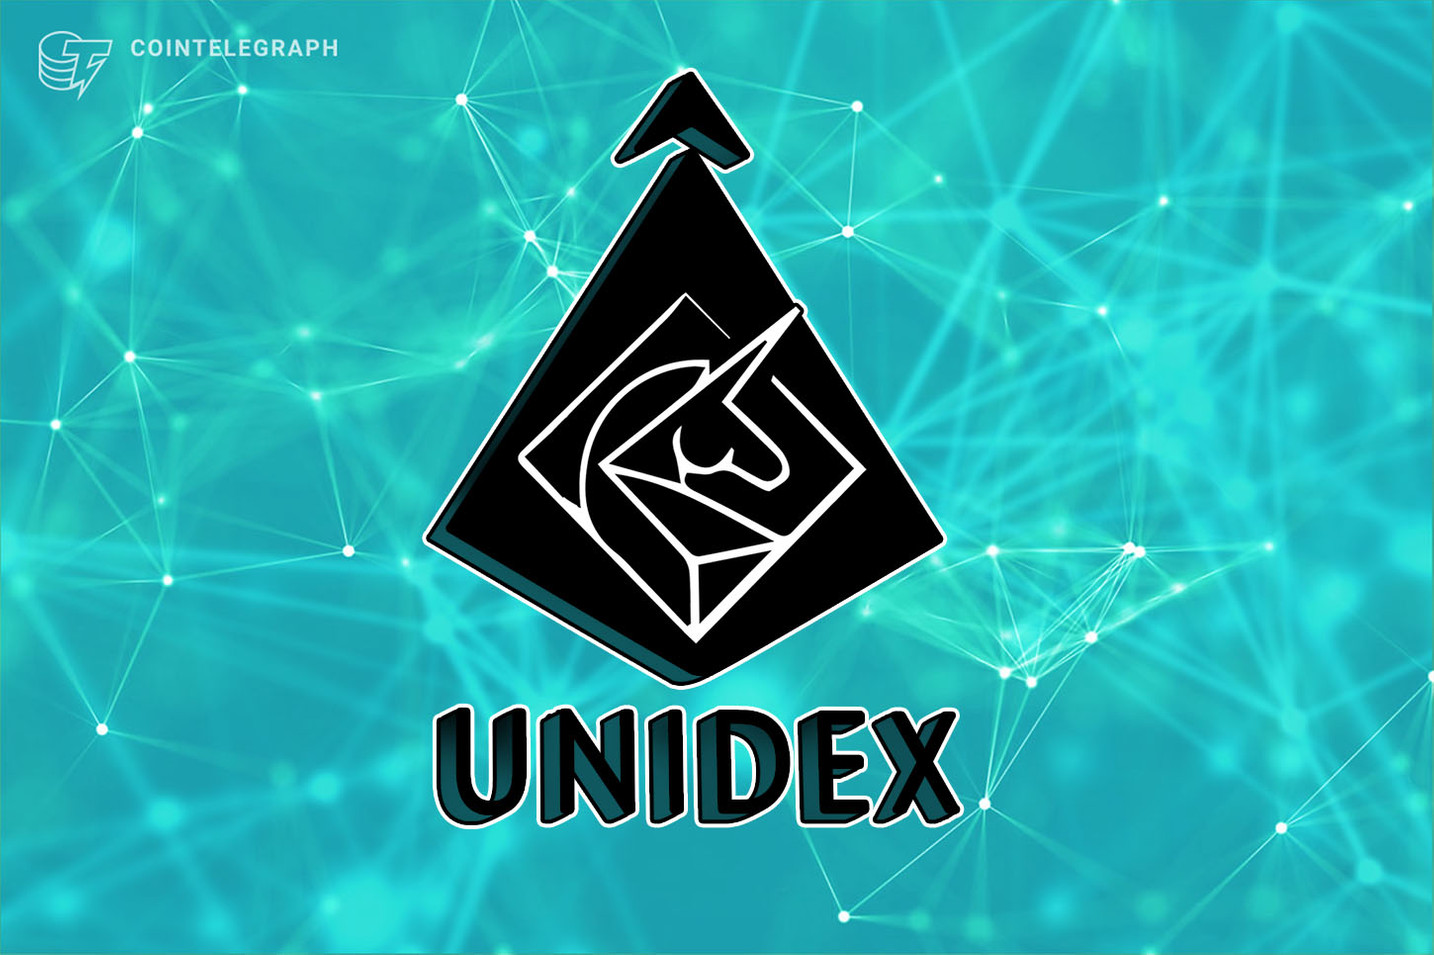 UniDex launches as an all-inclusive platform for DeFi trading